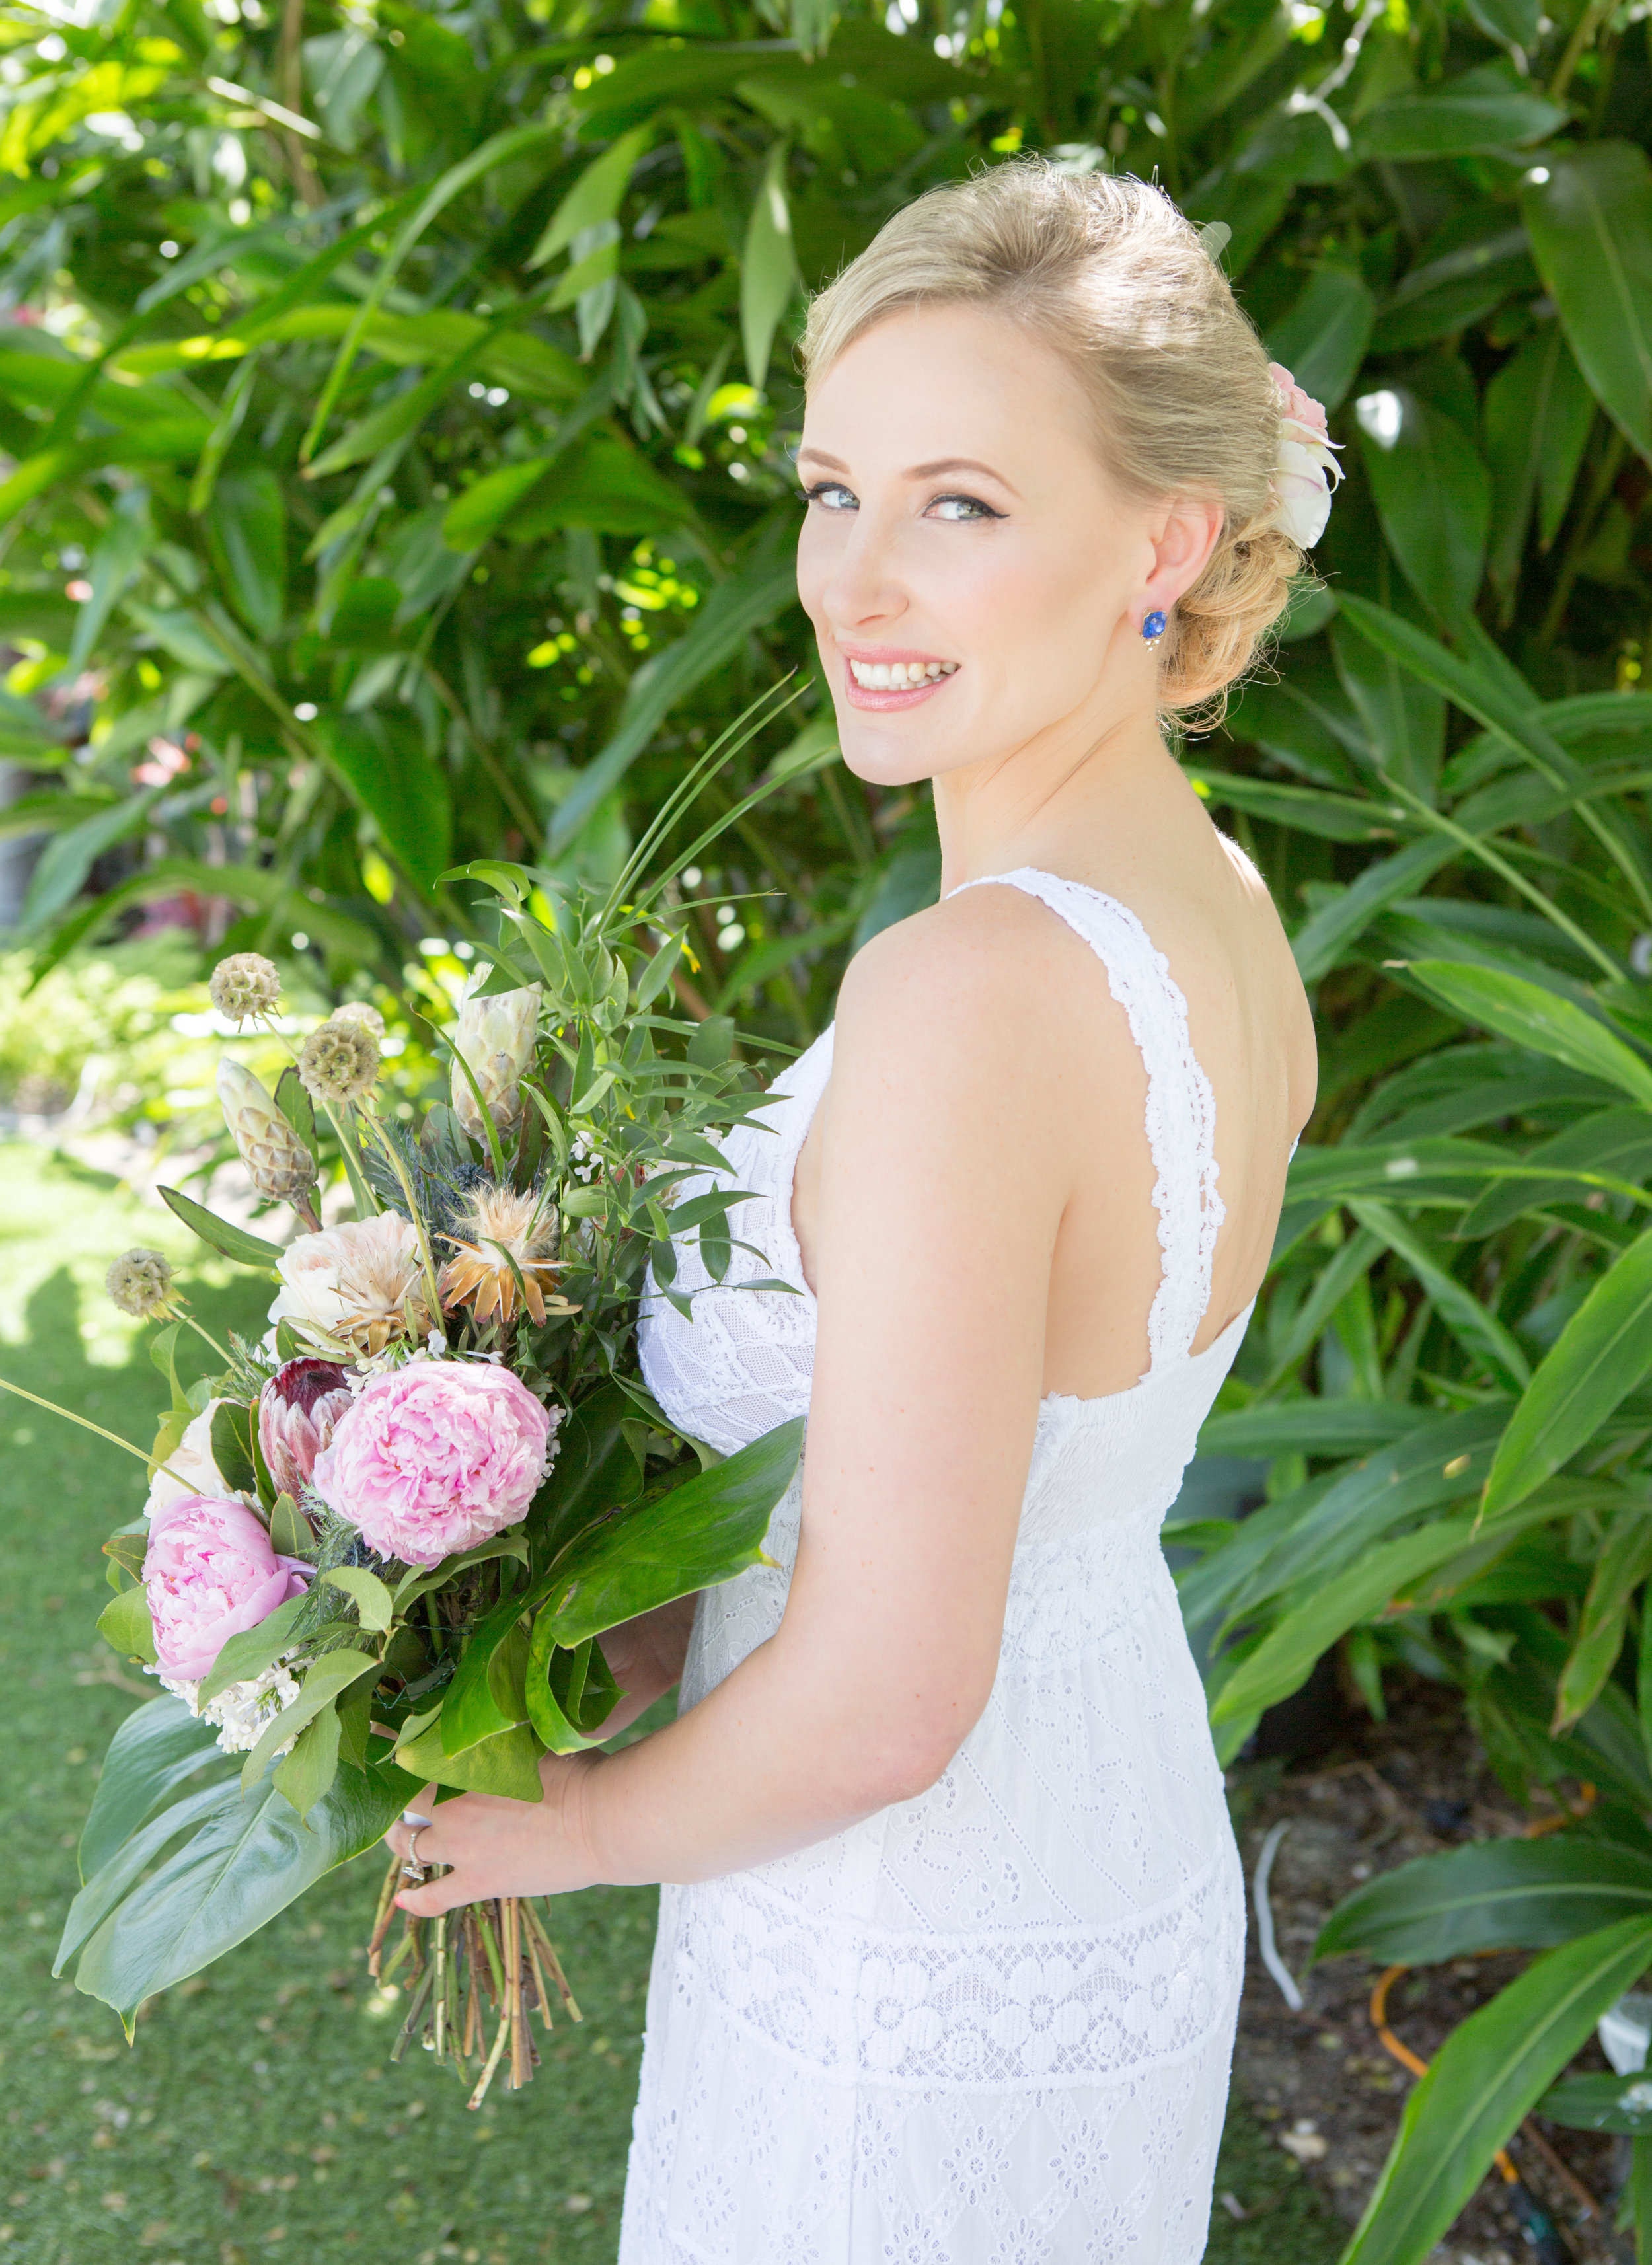 Bride with tropical wedding bouquet and wedding flowers for her hair